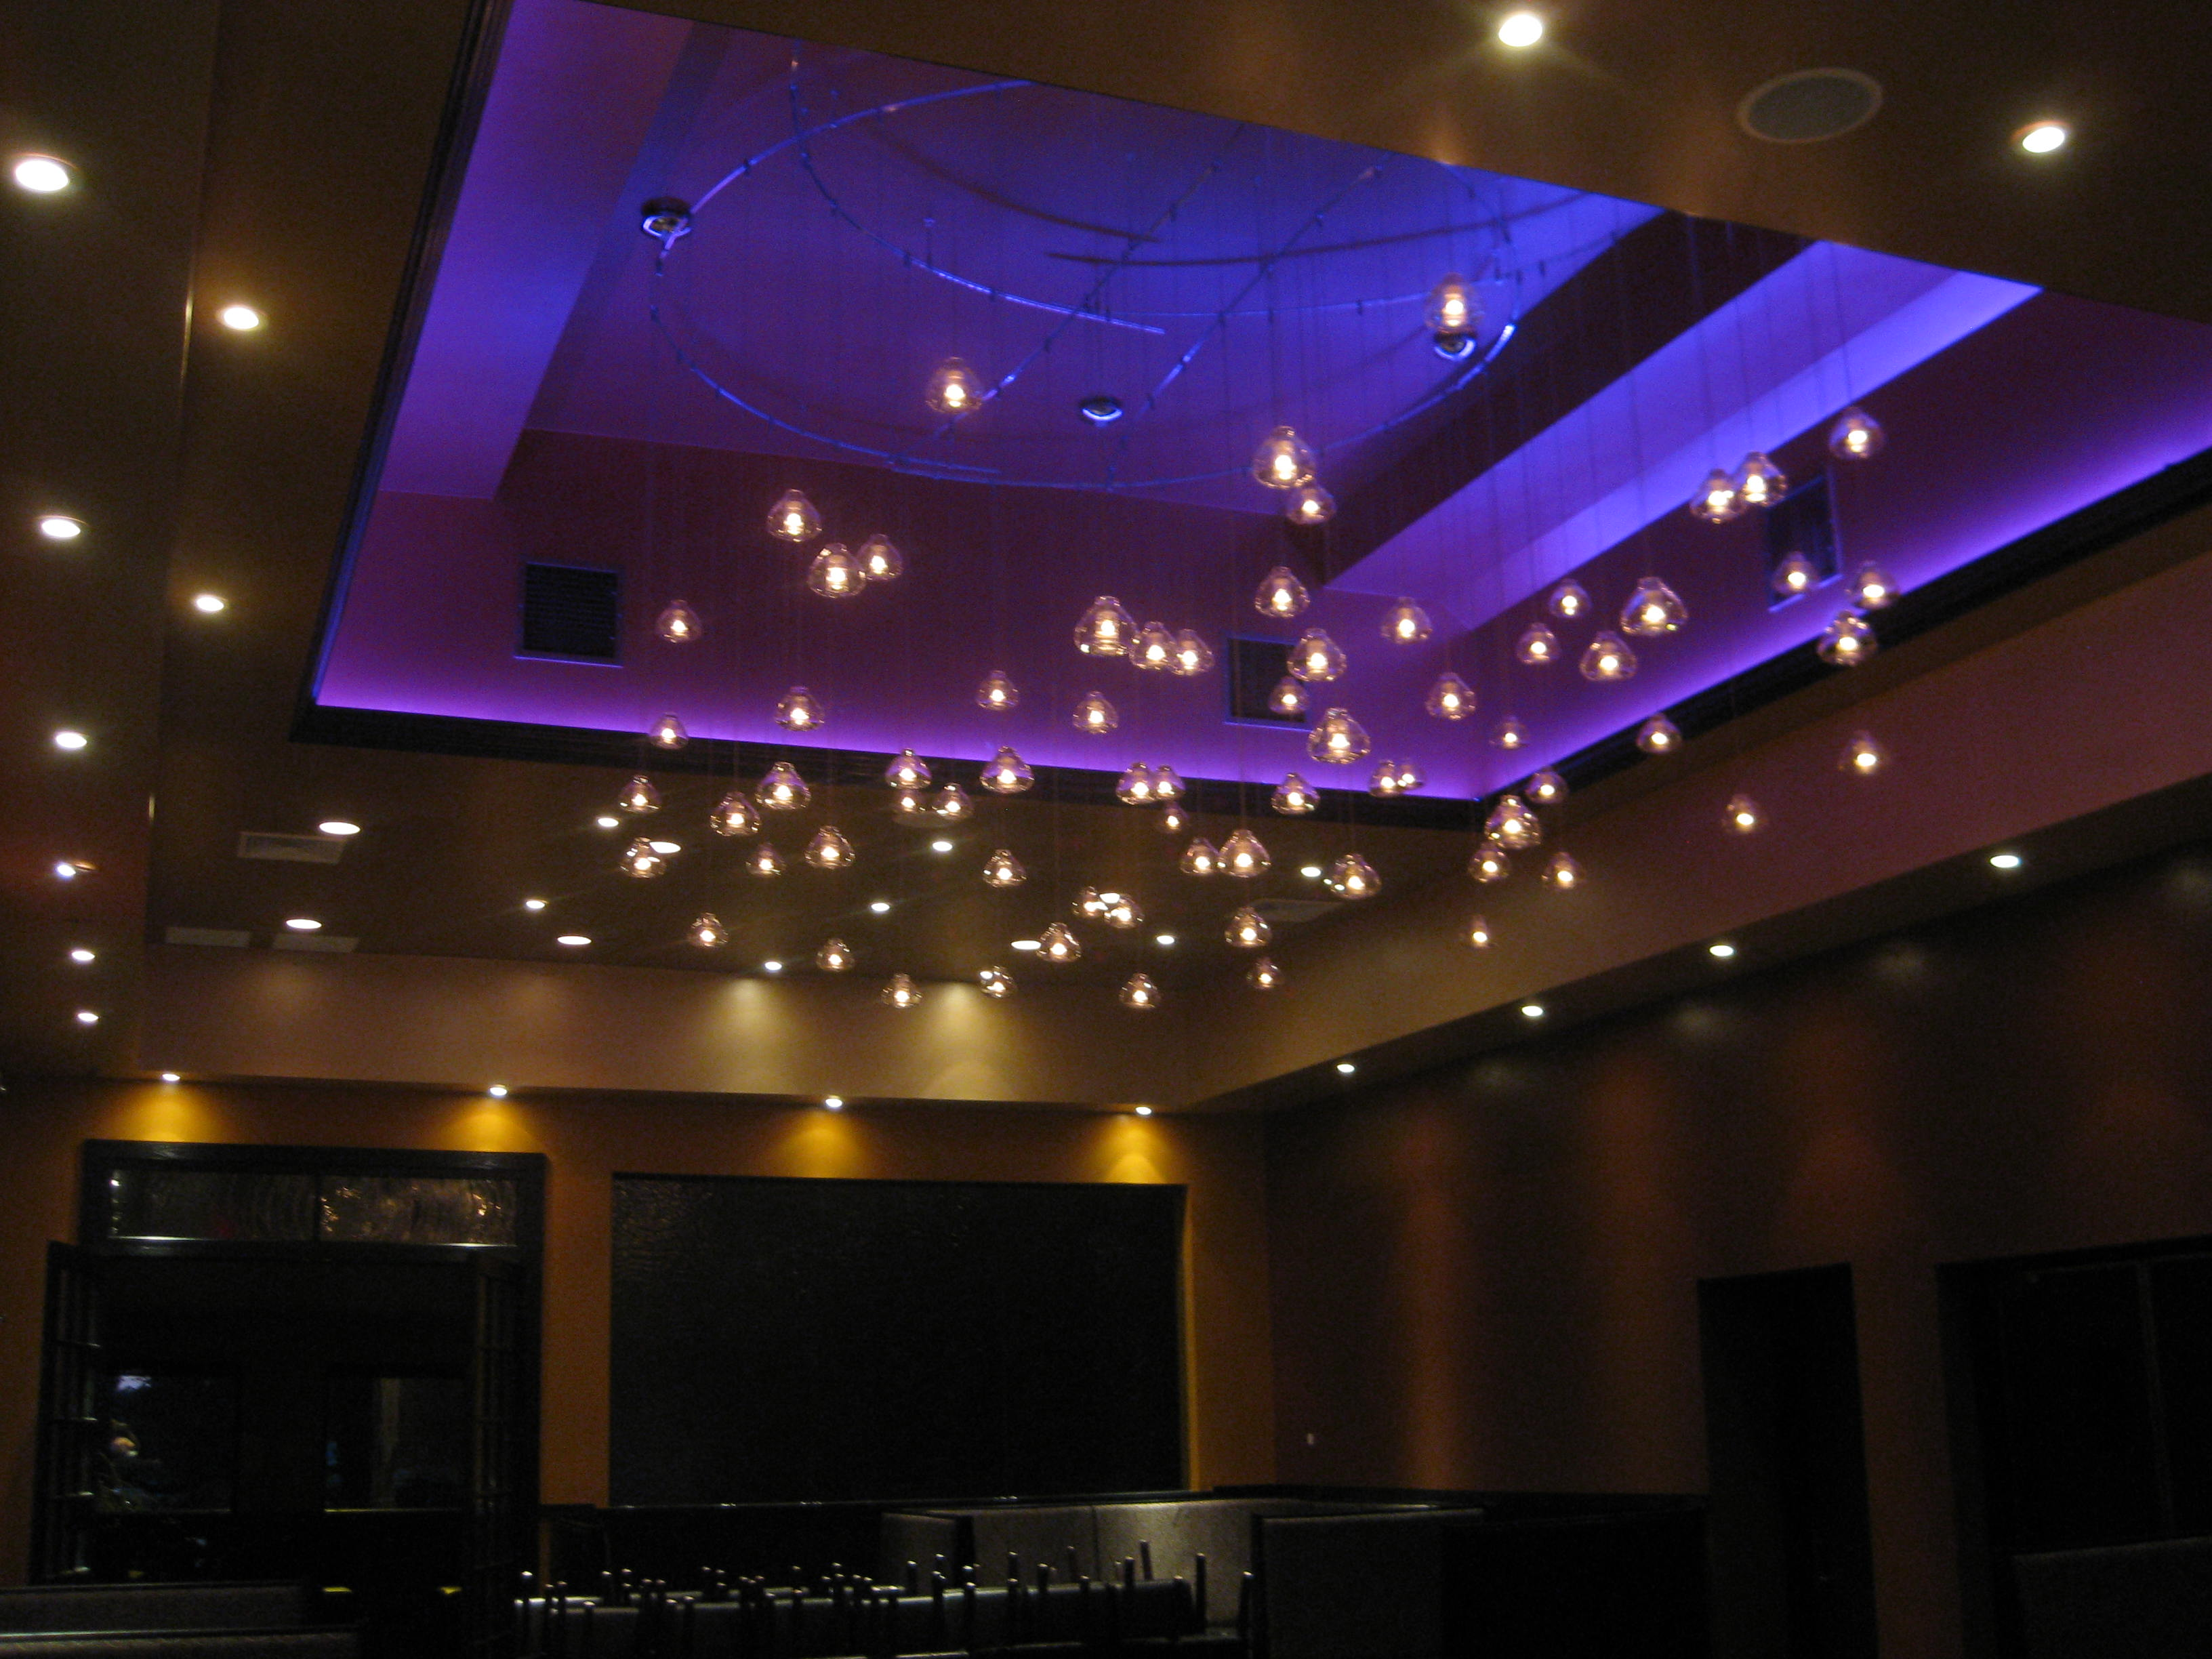 10 facts about star led lights ceiling warisan lighting star led lights ceiling photo 1 aloadofball Images